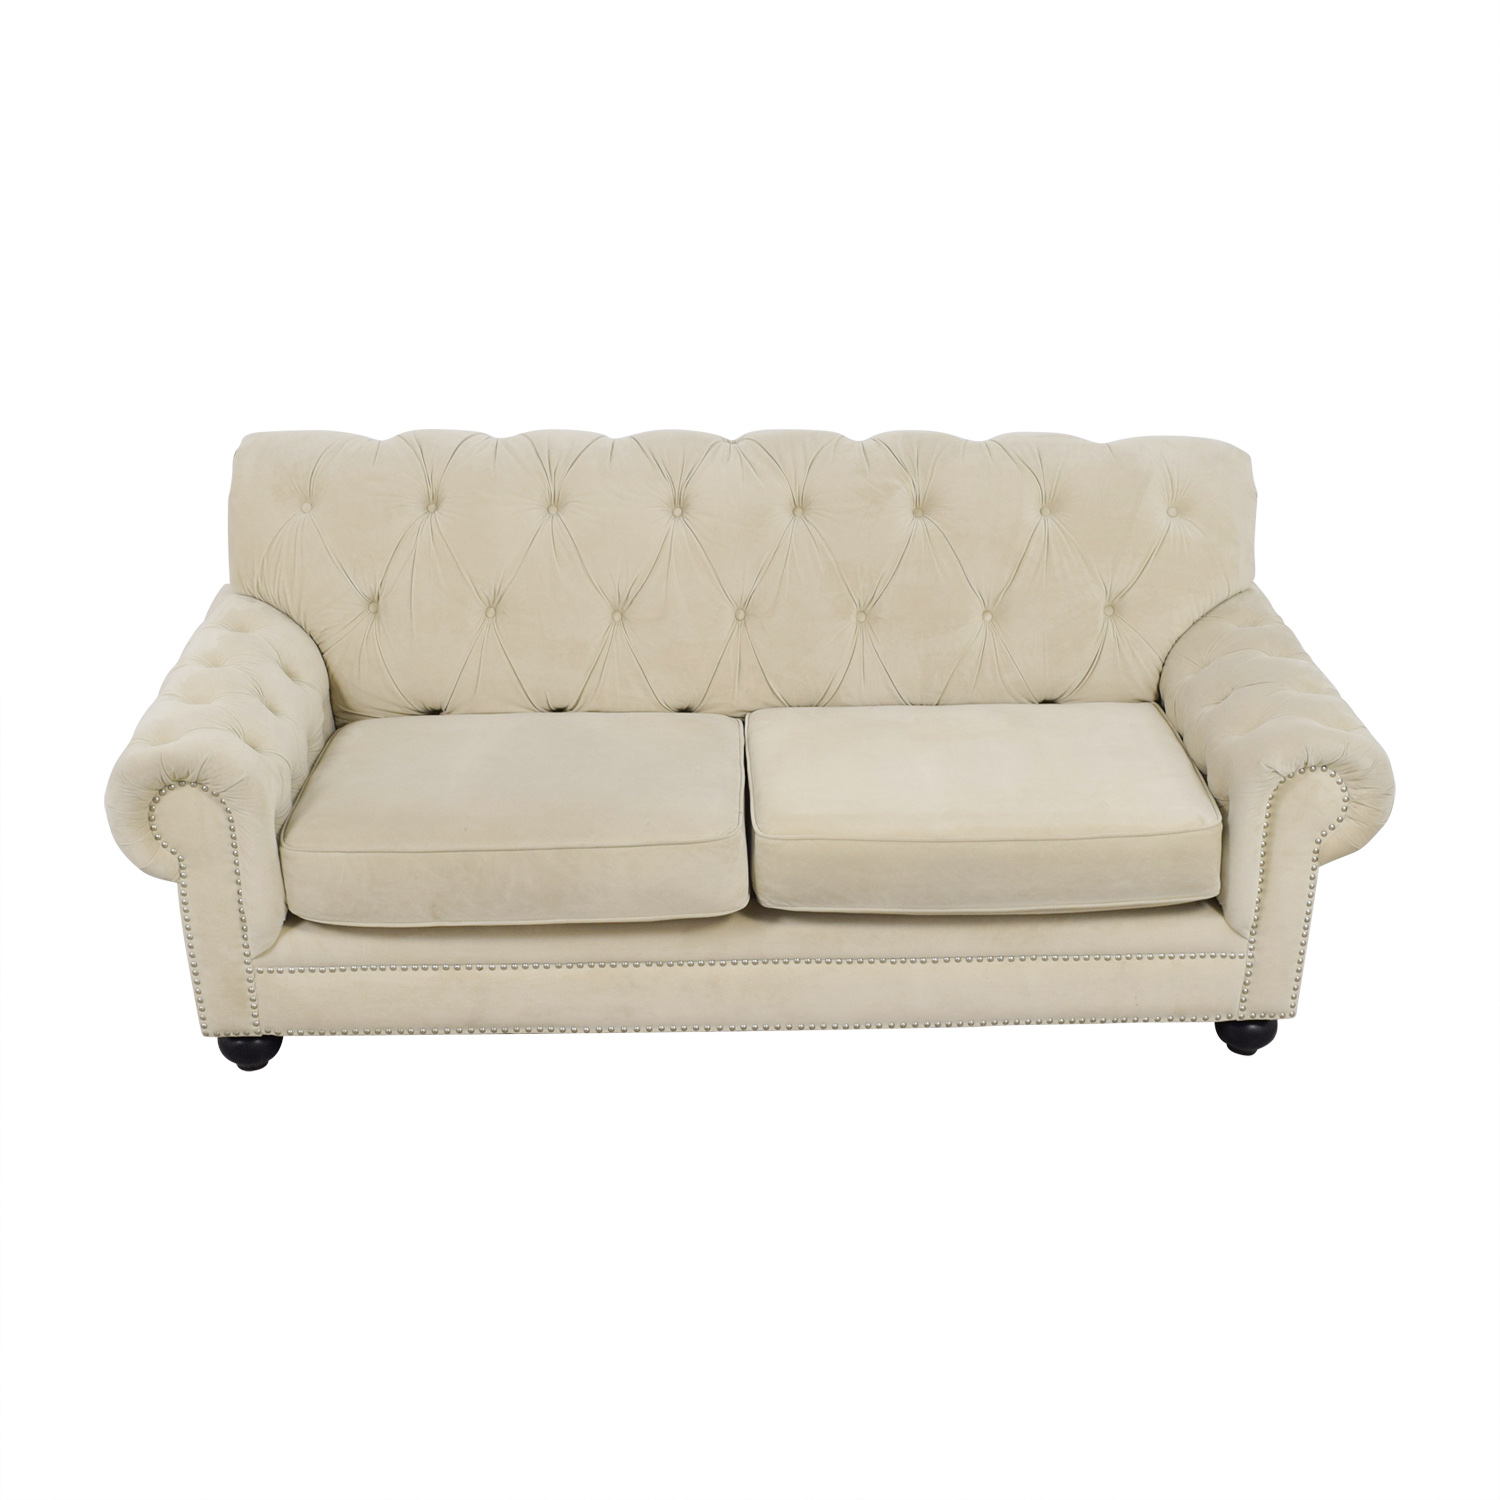 Chesterfield Style Tufted Beige Velvet Sofa nj